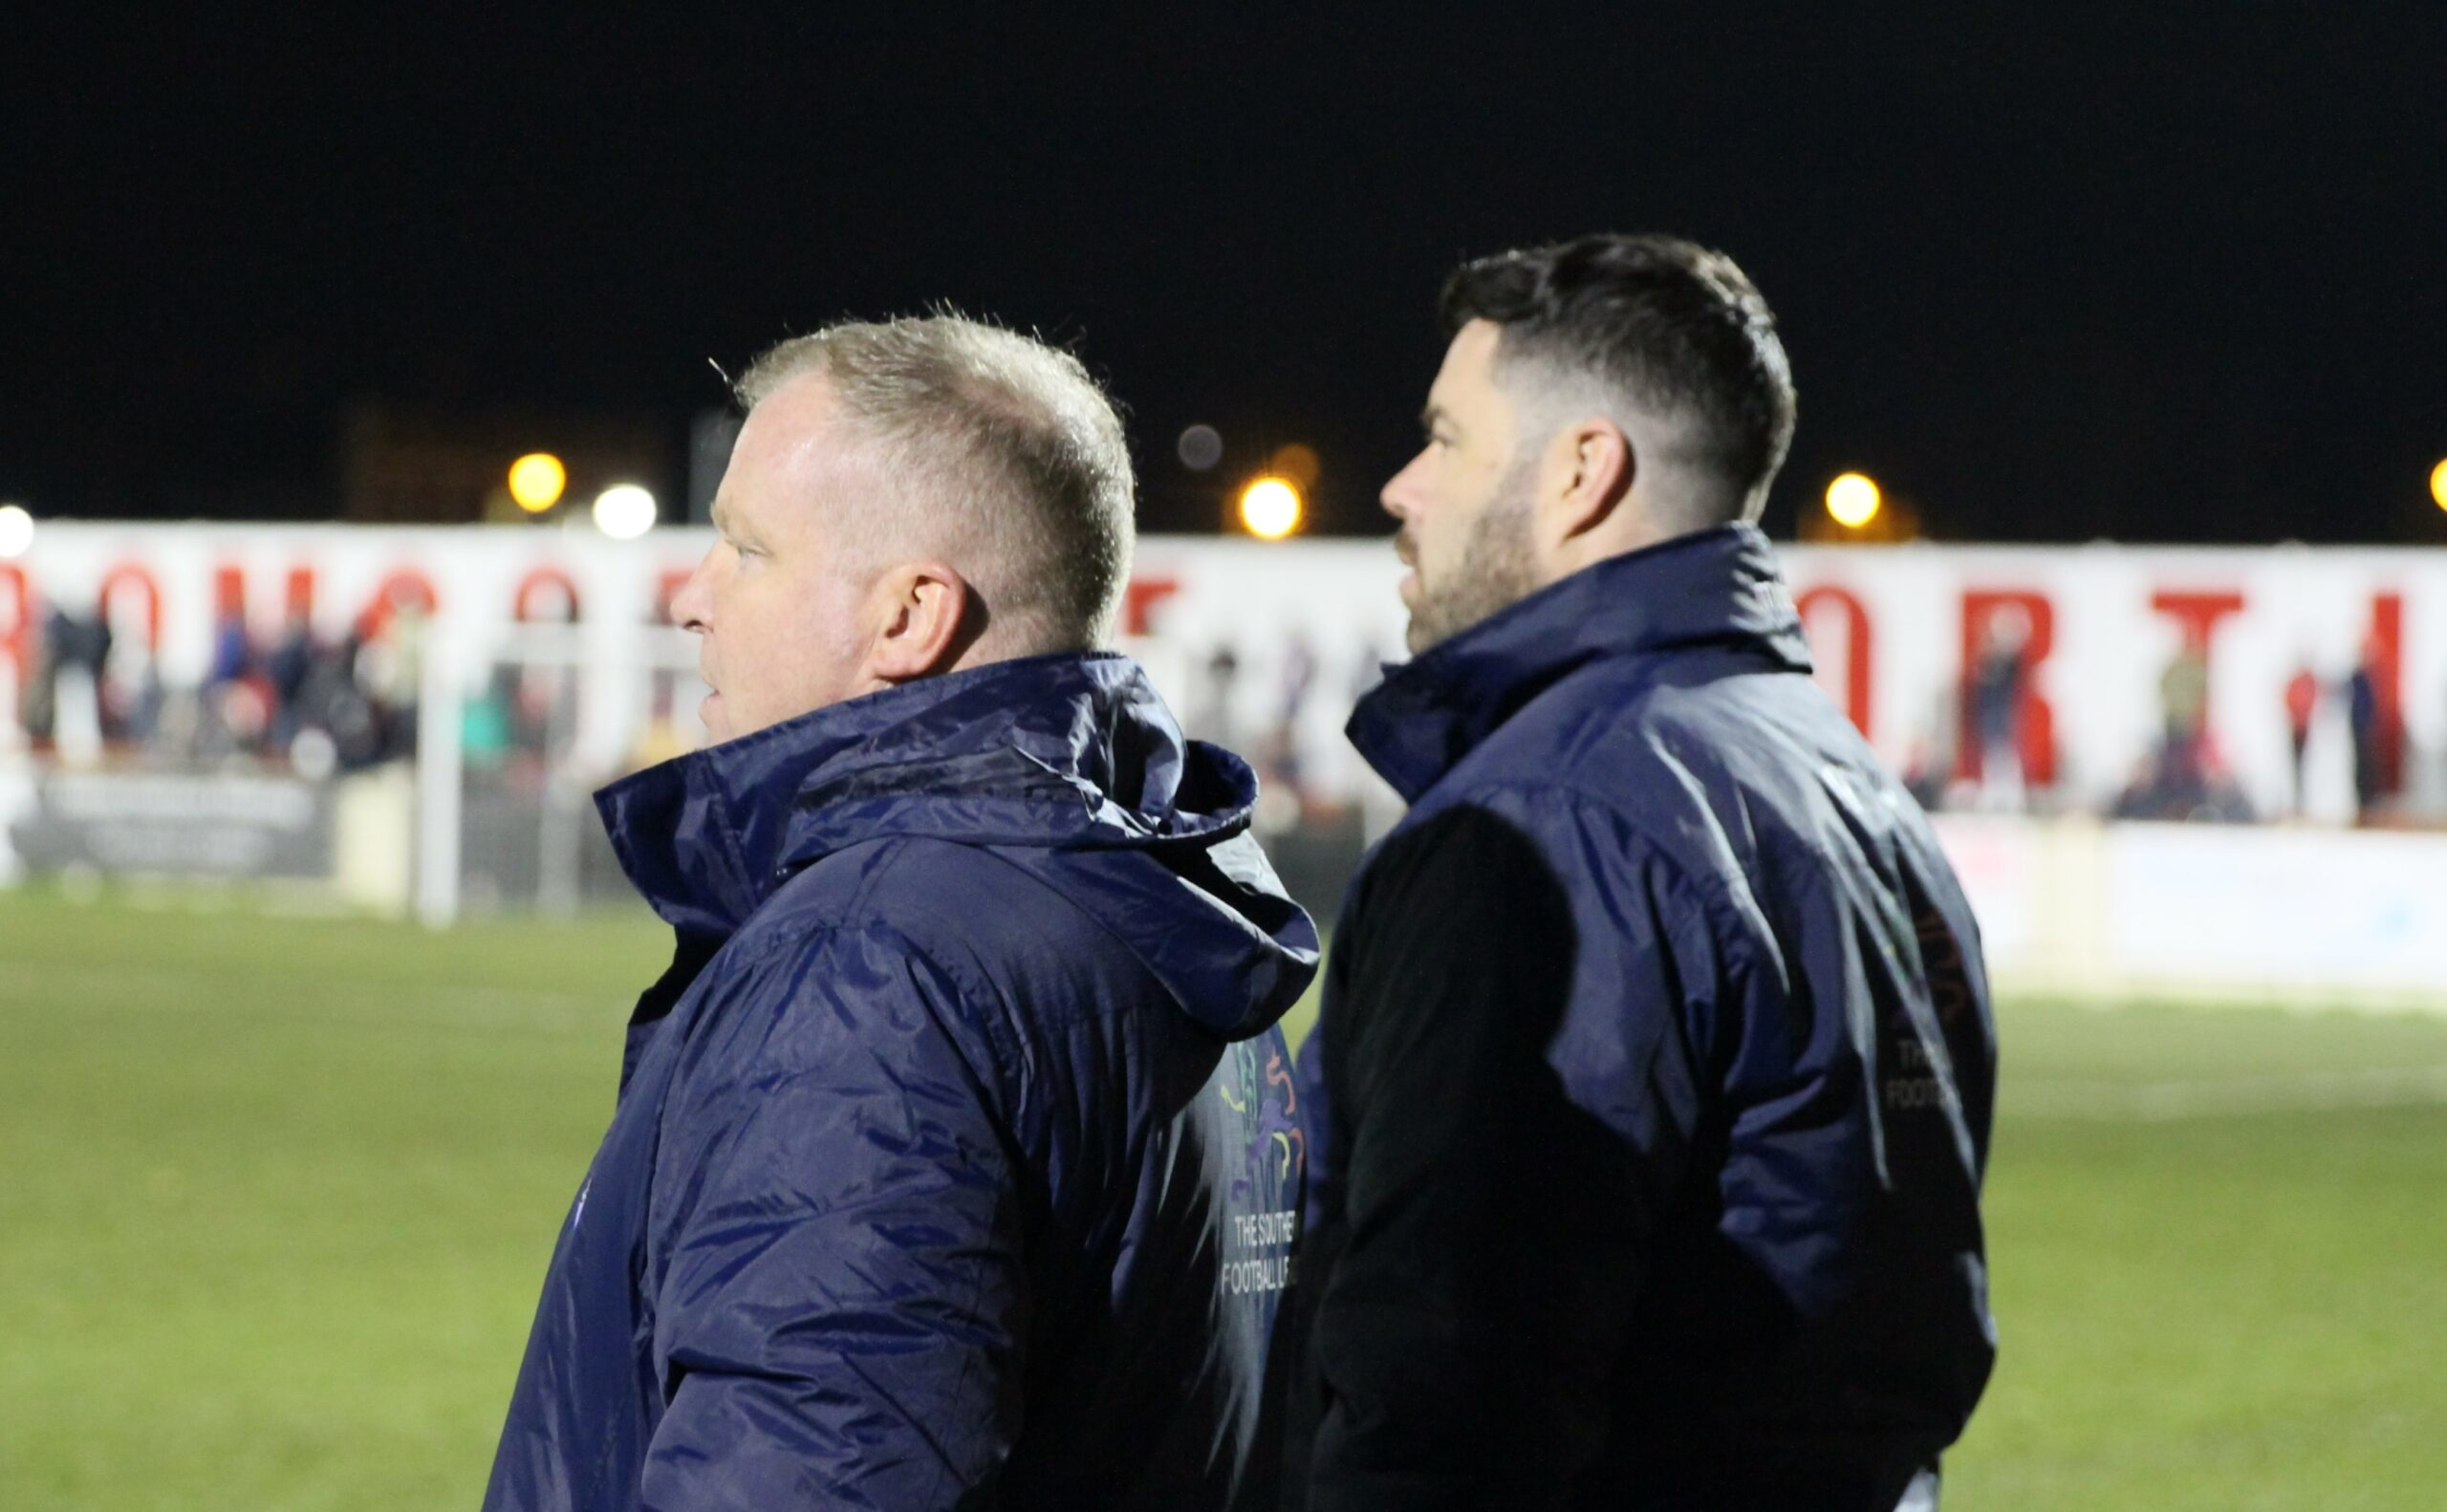 MATCH PREVIEW: Info ahead of Boxing Day's game versus Alvechurch